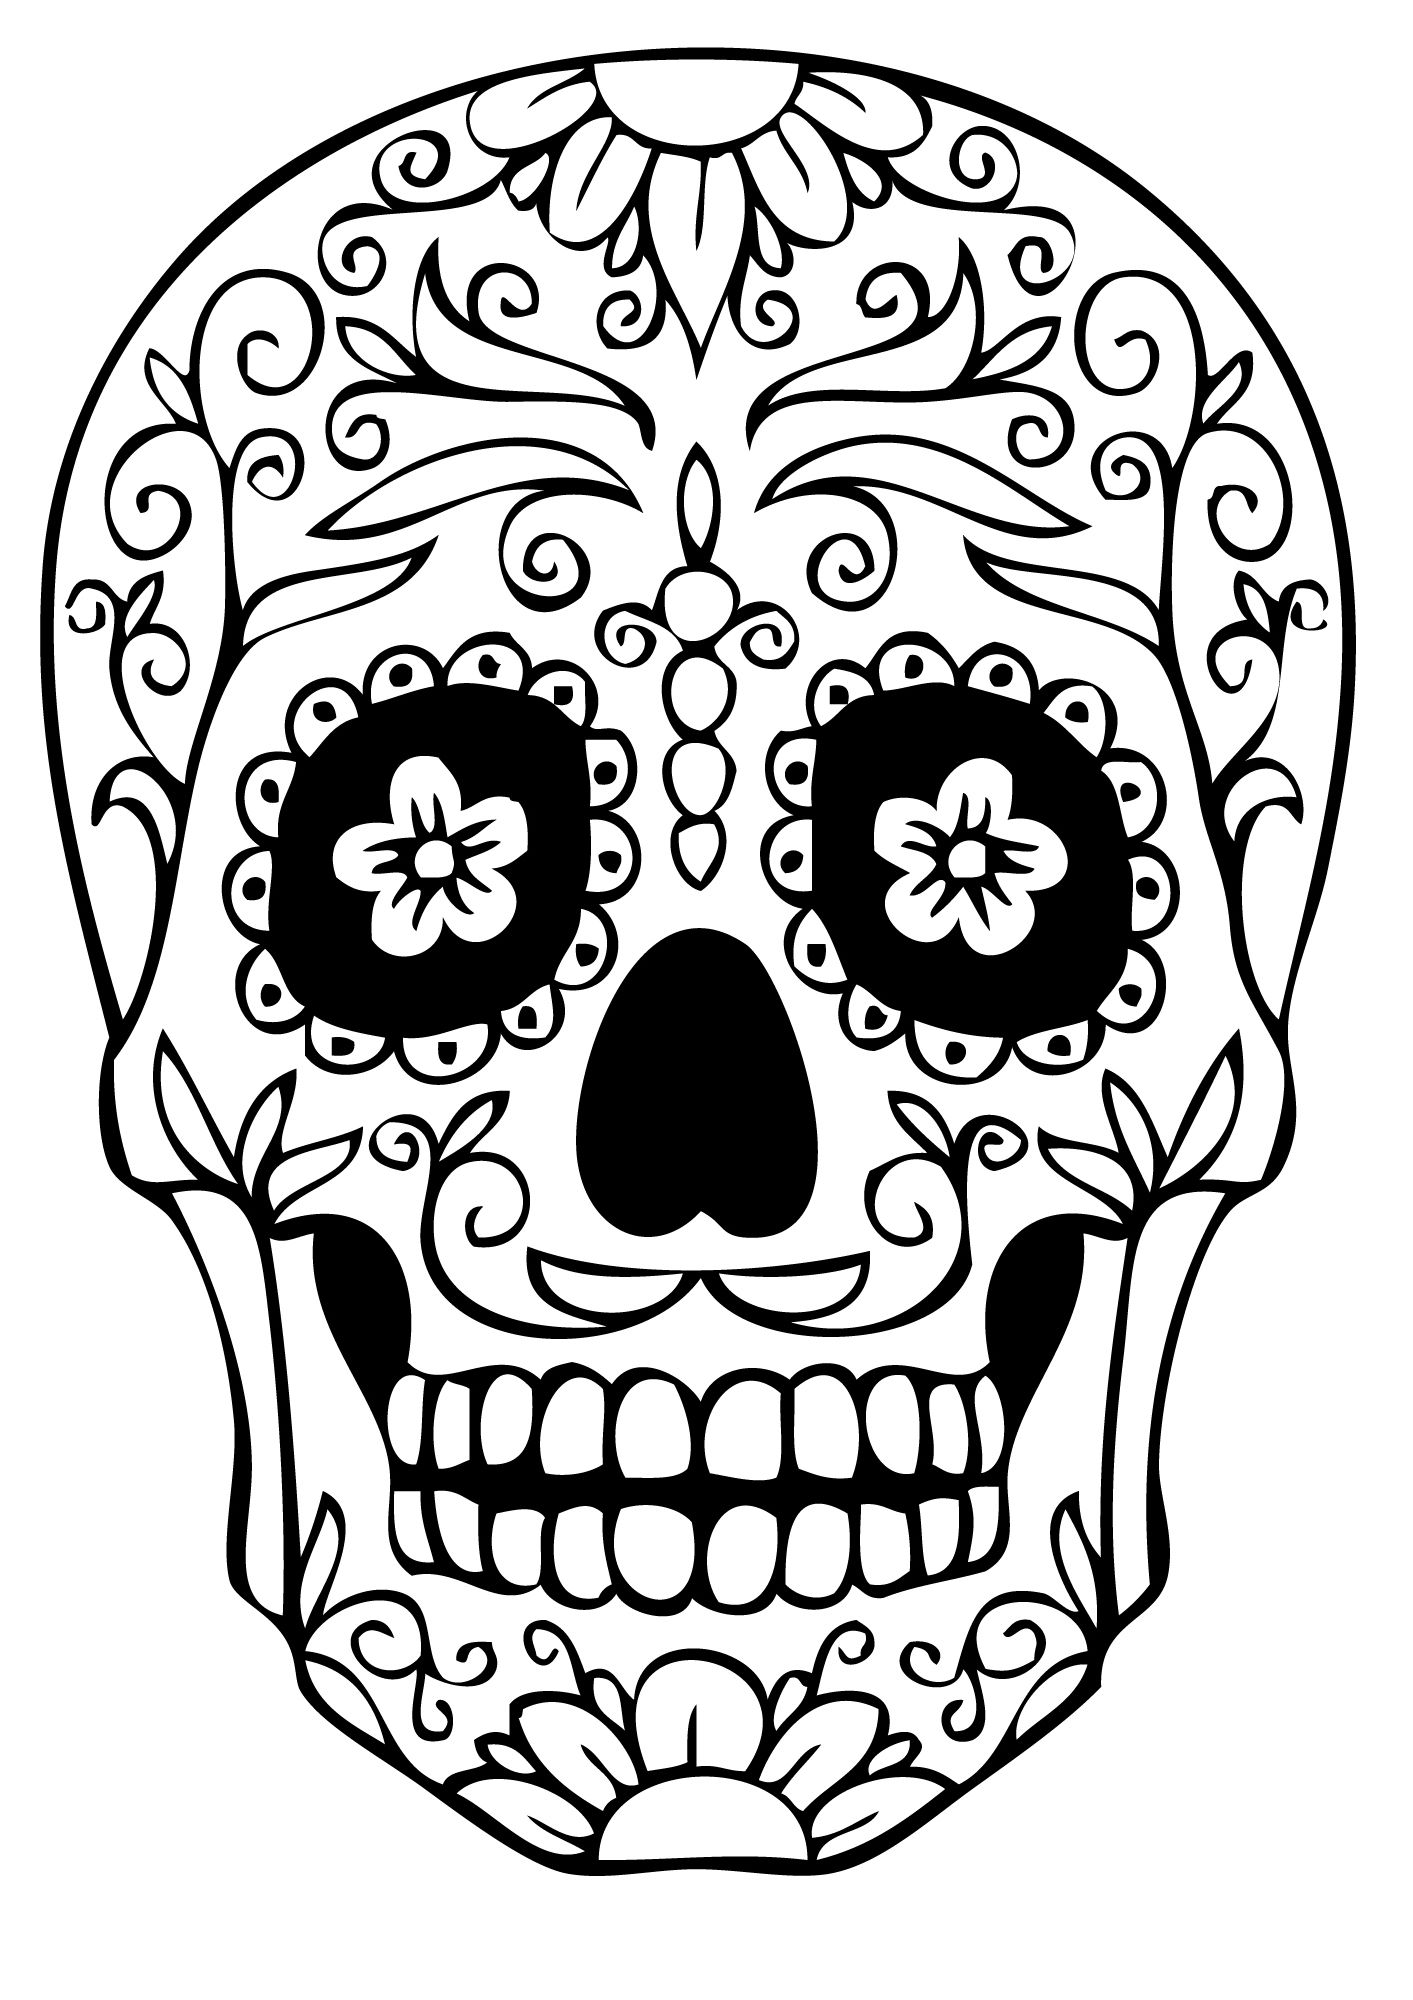 Sugar Skull Coloring Pages - Best Coloring Pages For Kids